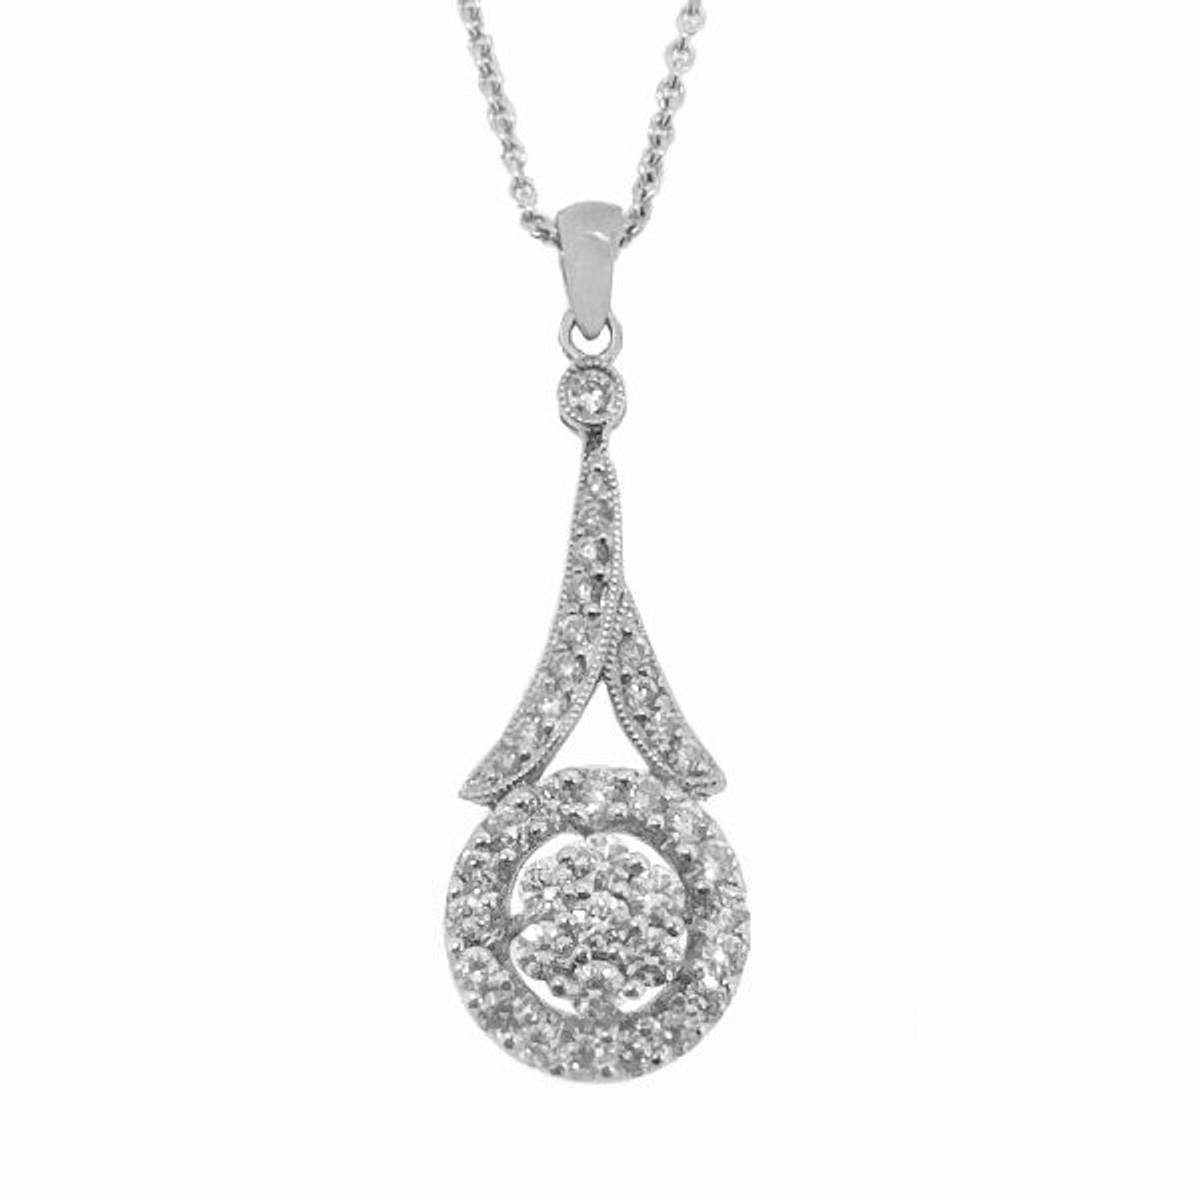 """18k White Gold Brilliant Cut Diamond Cluster Pendant On 18k White Gold 18"""" Chain Total Diamond Weight 0.60cts Pendant length including loop  3cmPendant width 1cm"""